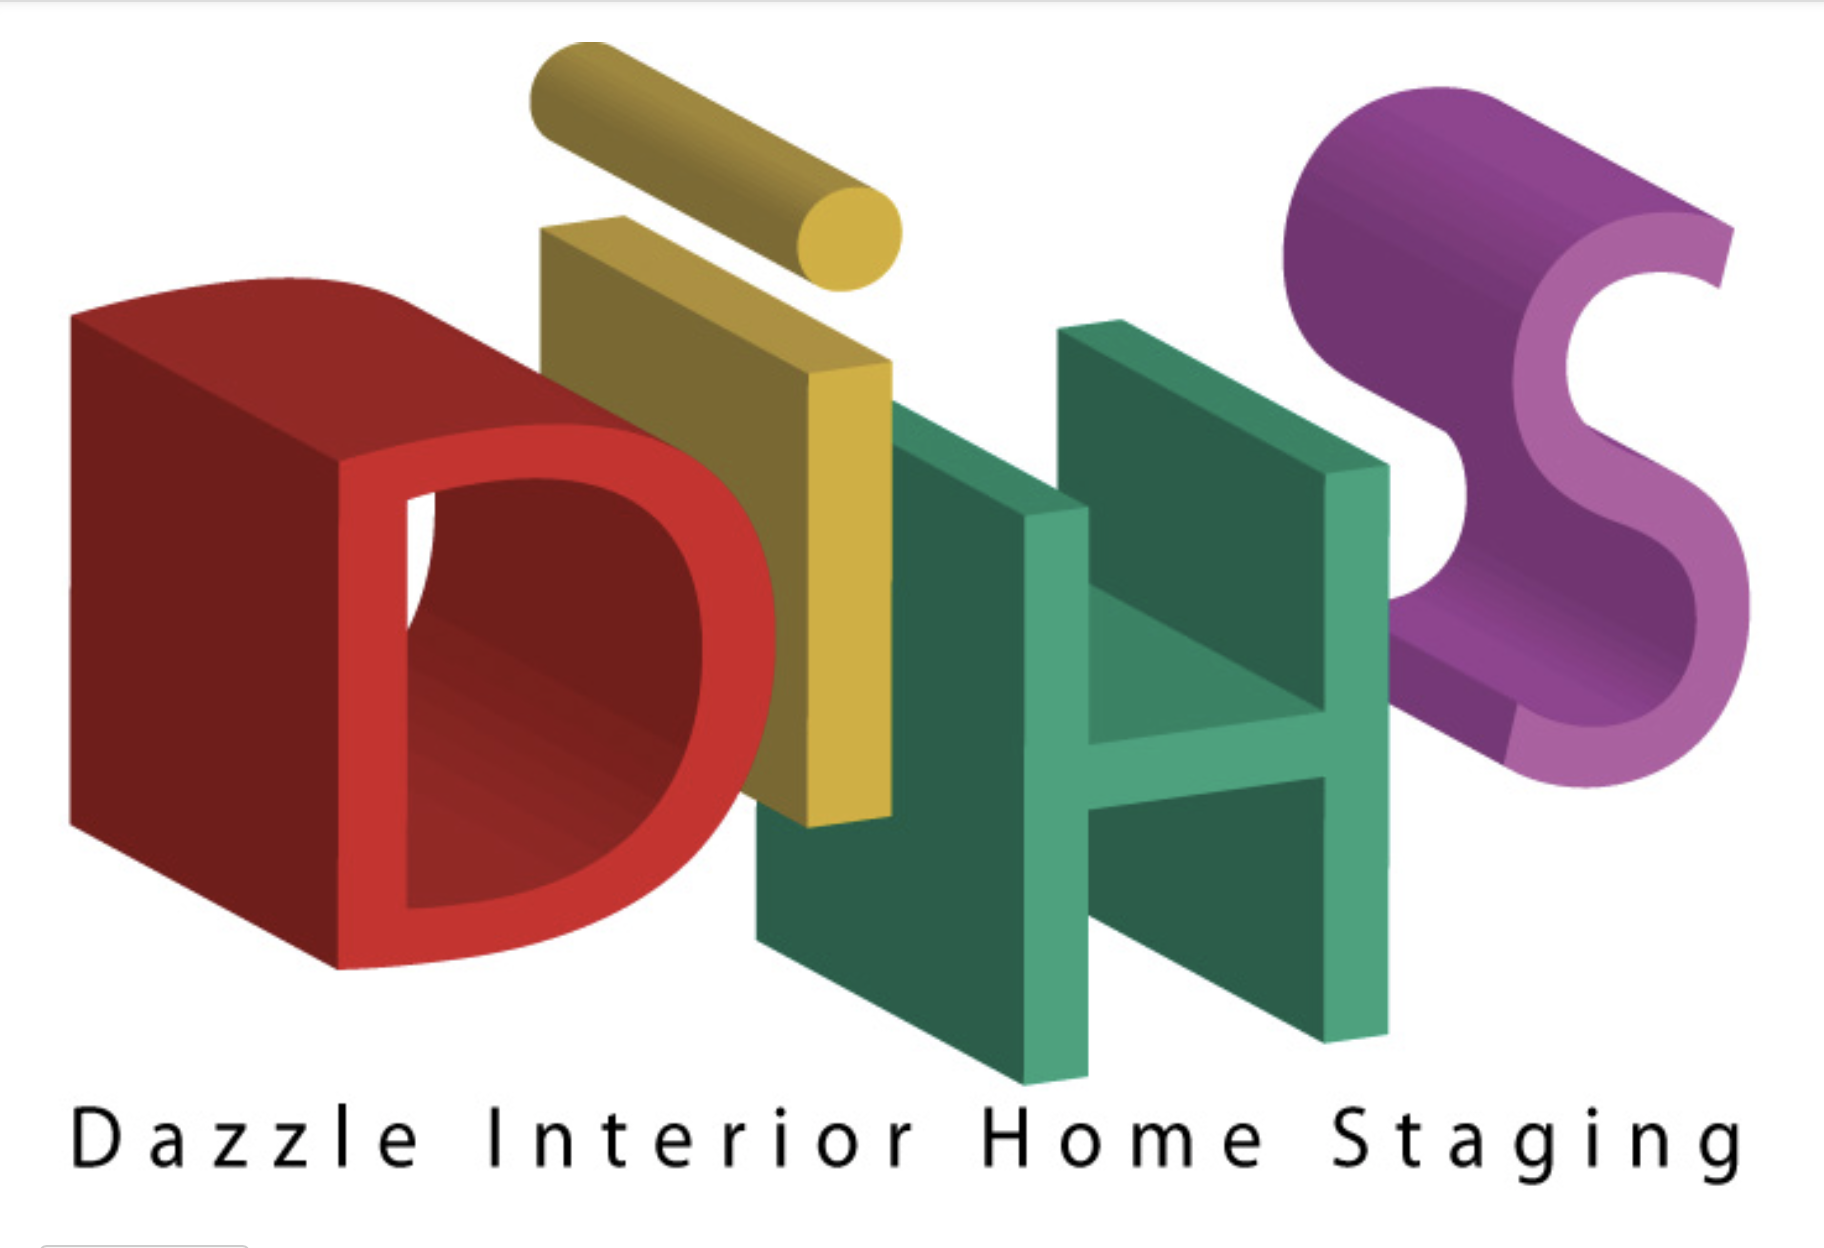 logo_Dazzle_interior_home_staging_by_ganna_sheyko_annaartdesign